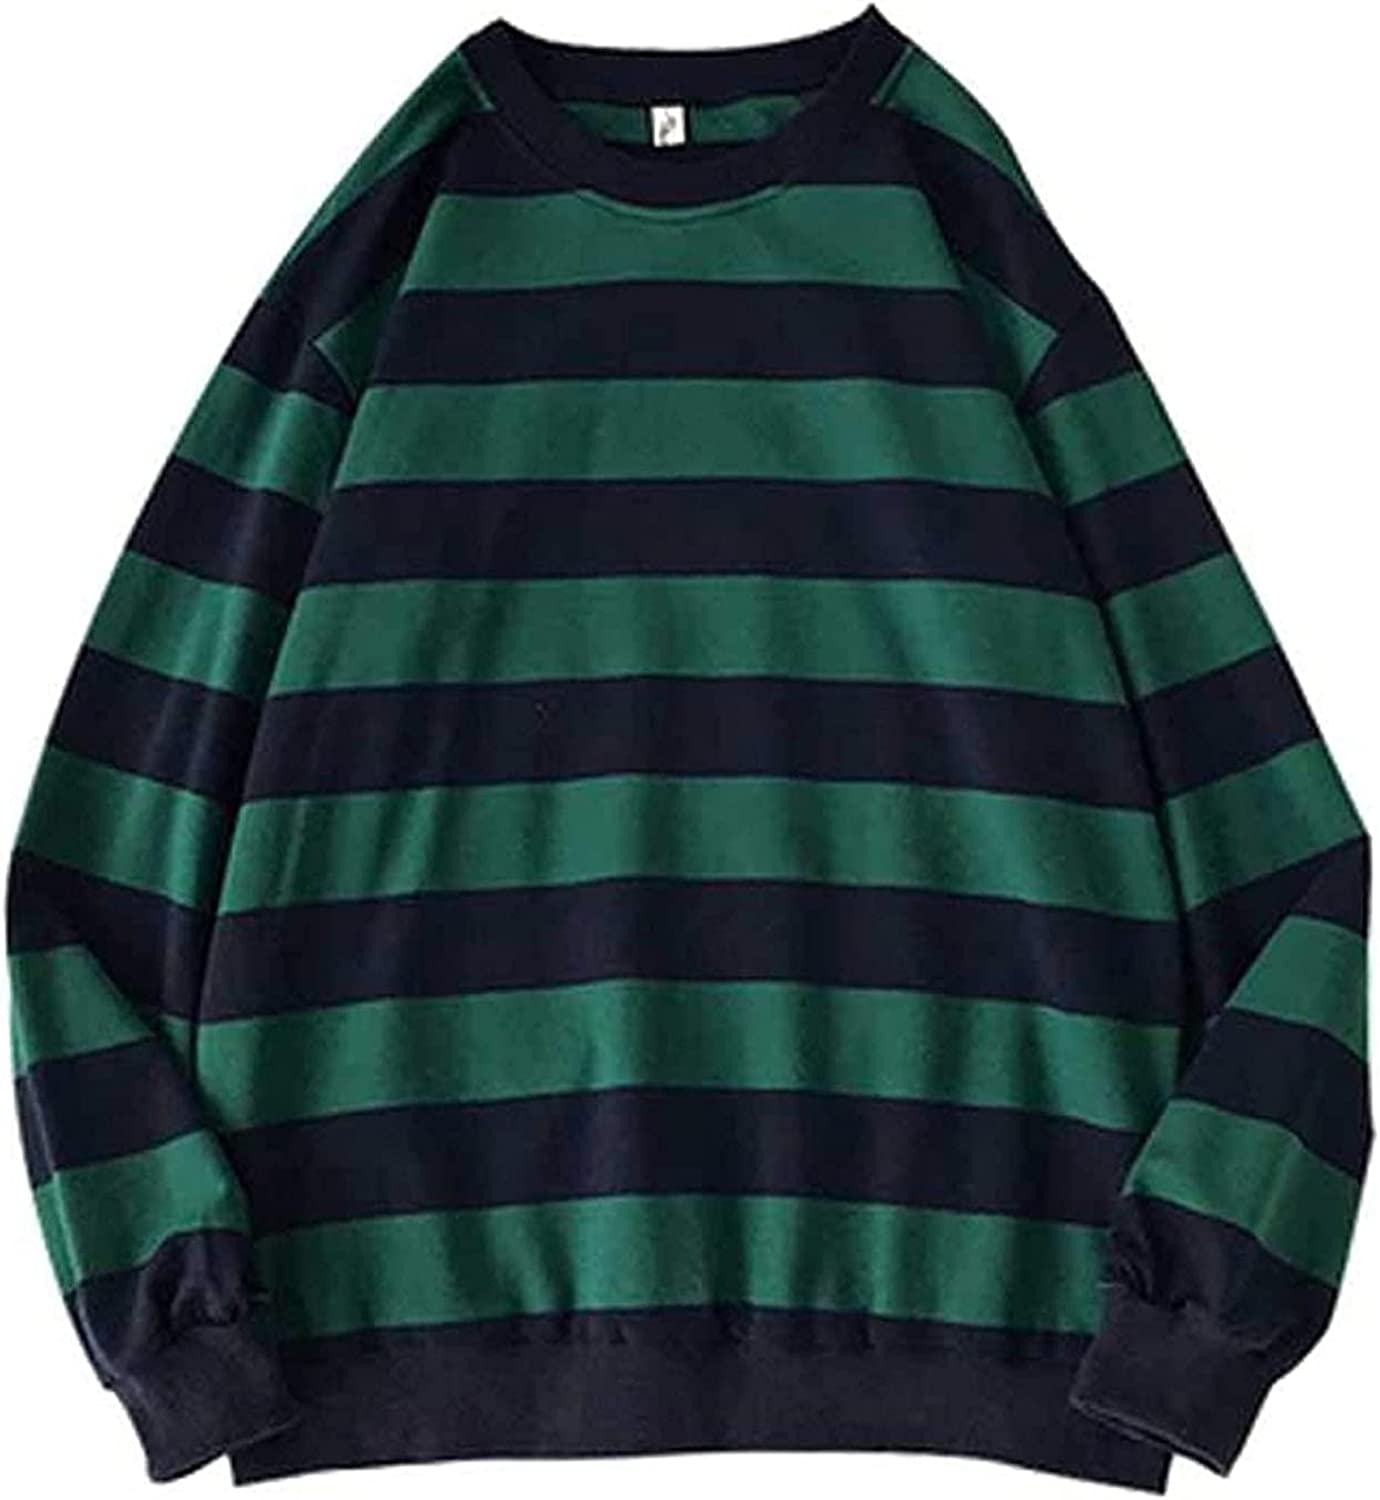 Winter Large Size Hooded Sweatshirt Fall Fashion Stripe Long Sleeve Pullover Tops Casual Loose Sportwear for Teens